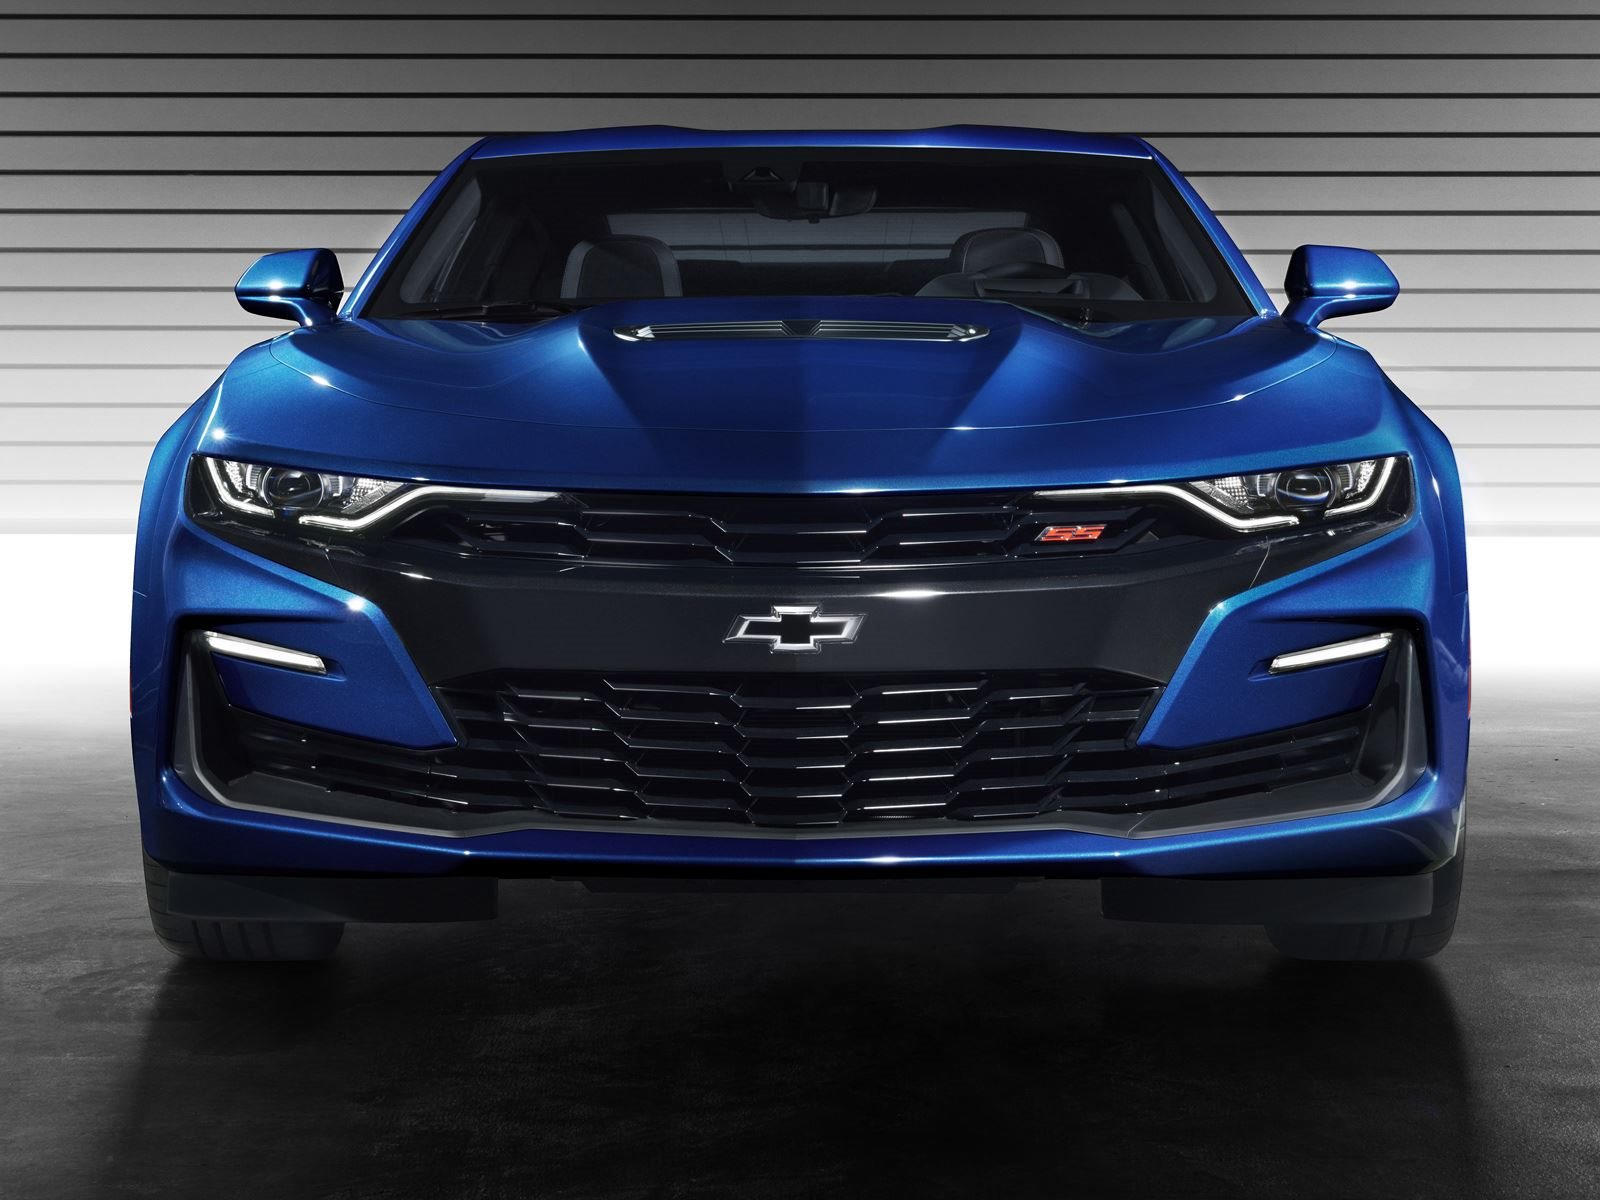 2019 Chevrolet Camaro Pricing picture